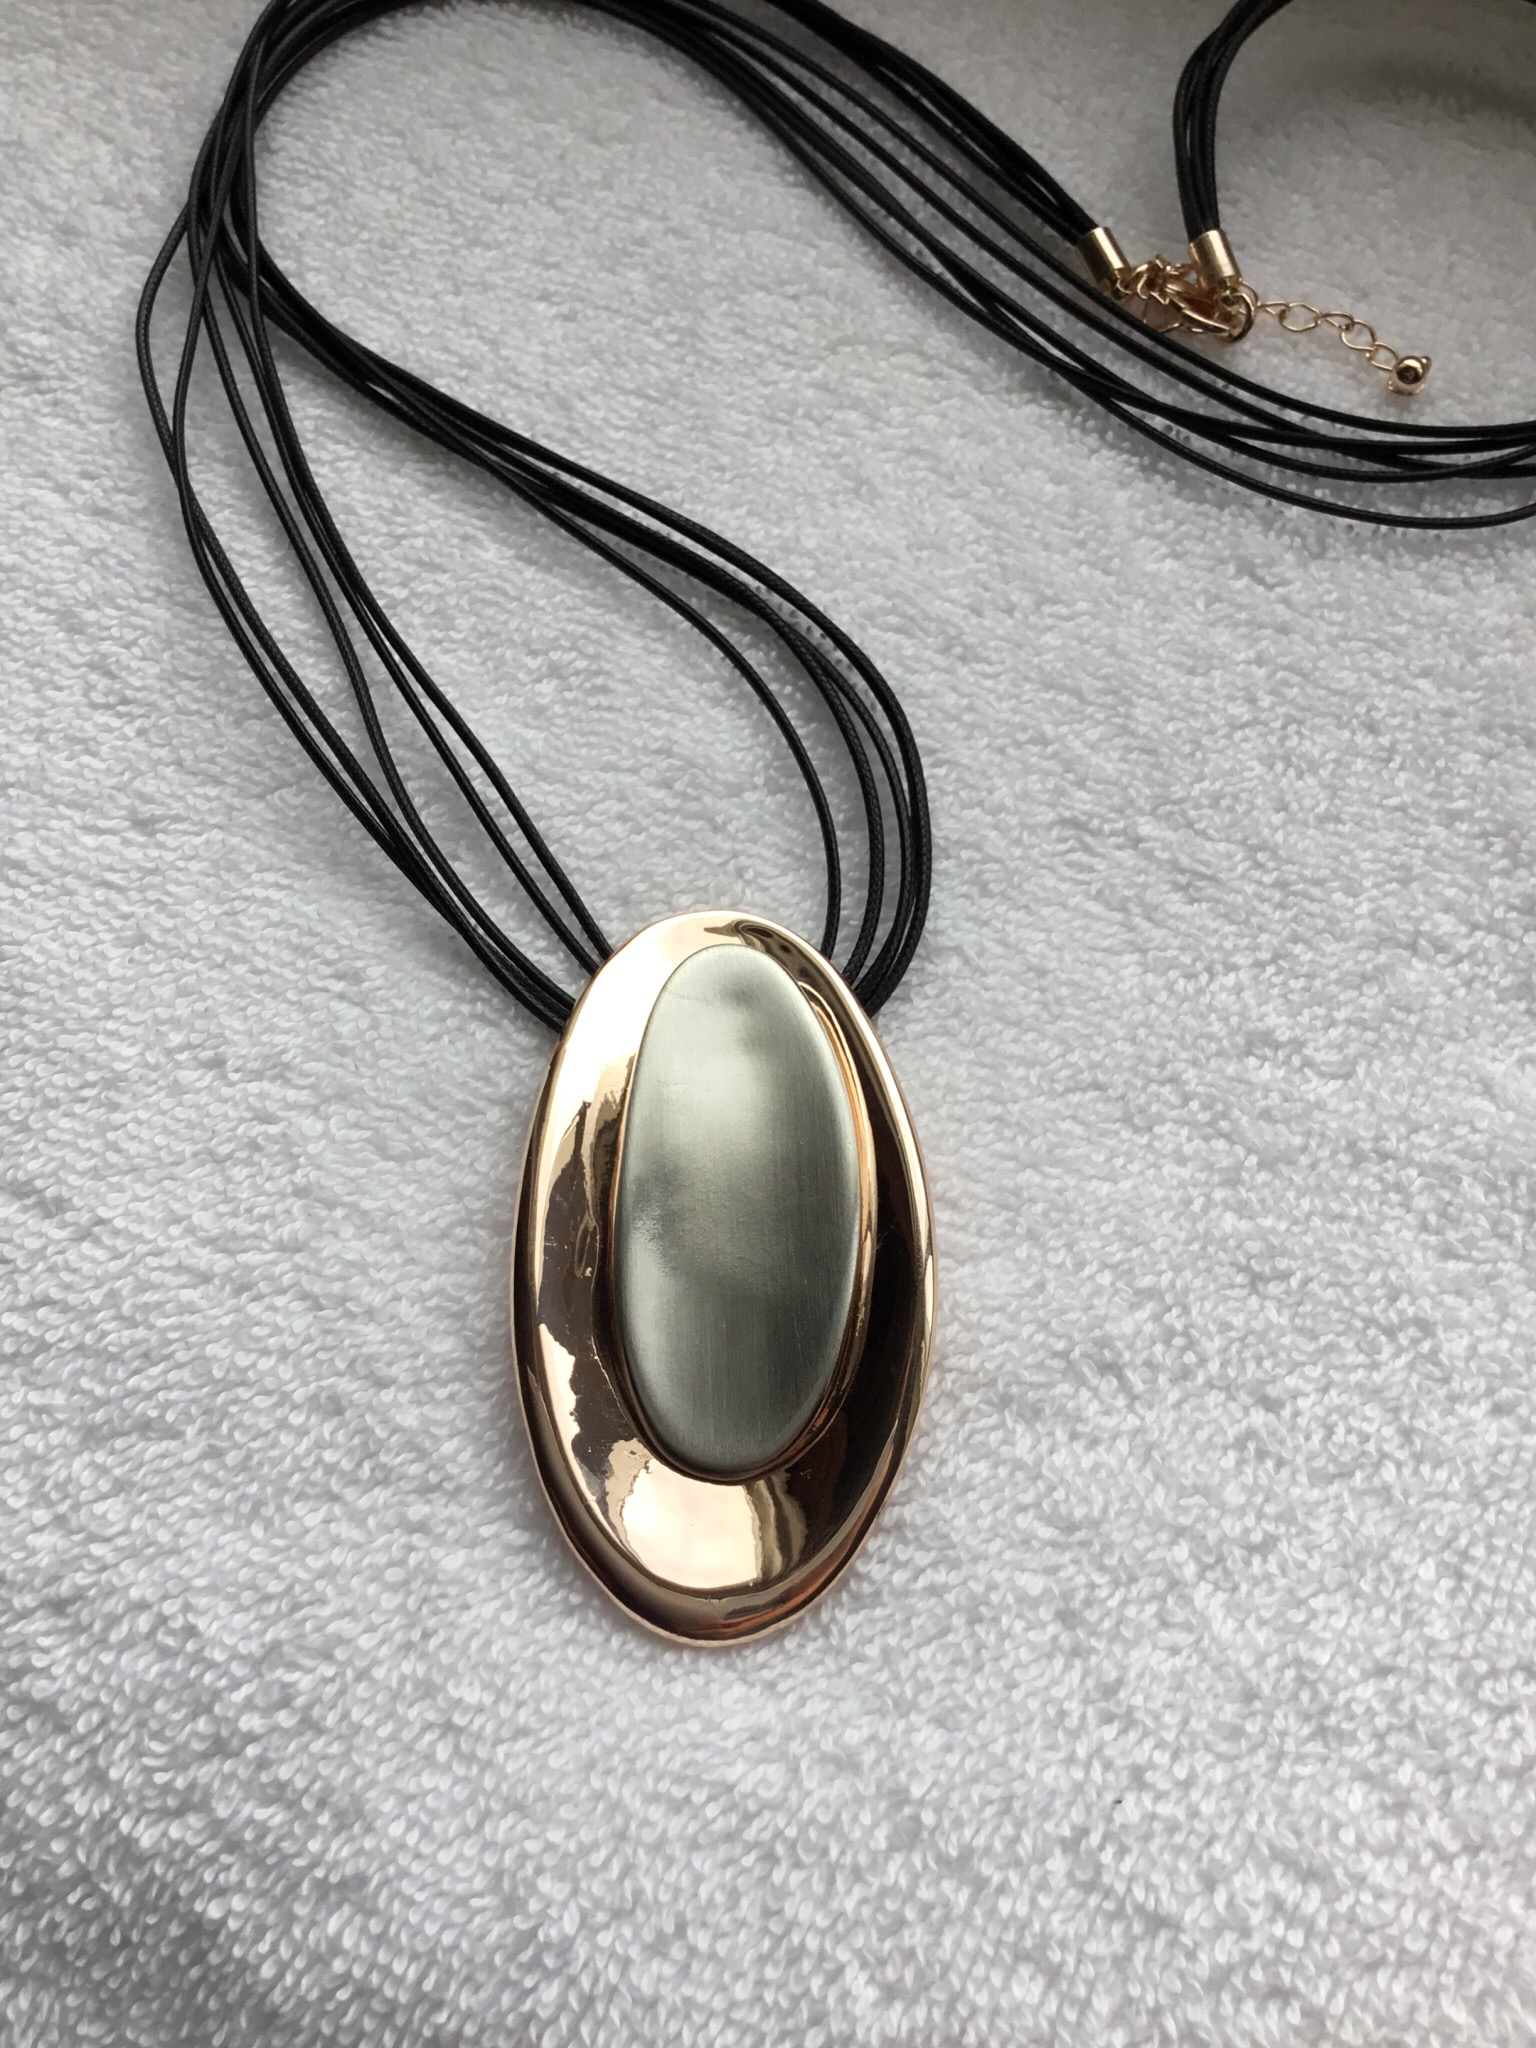 Oval Rose Gold and Metal Necklace  JNL-072-7048